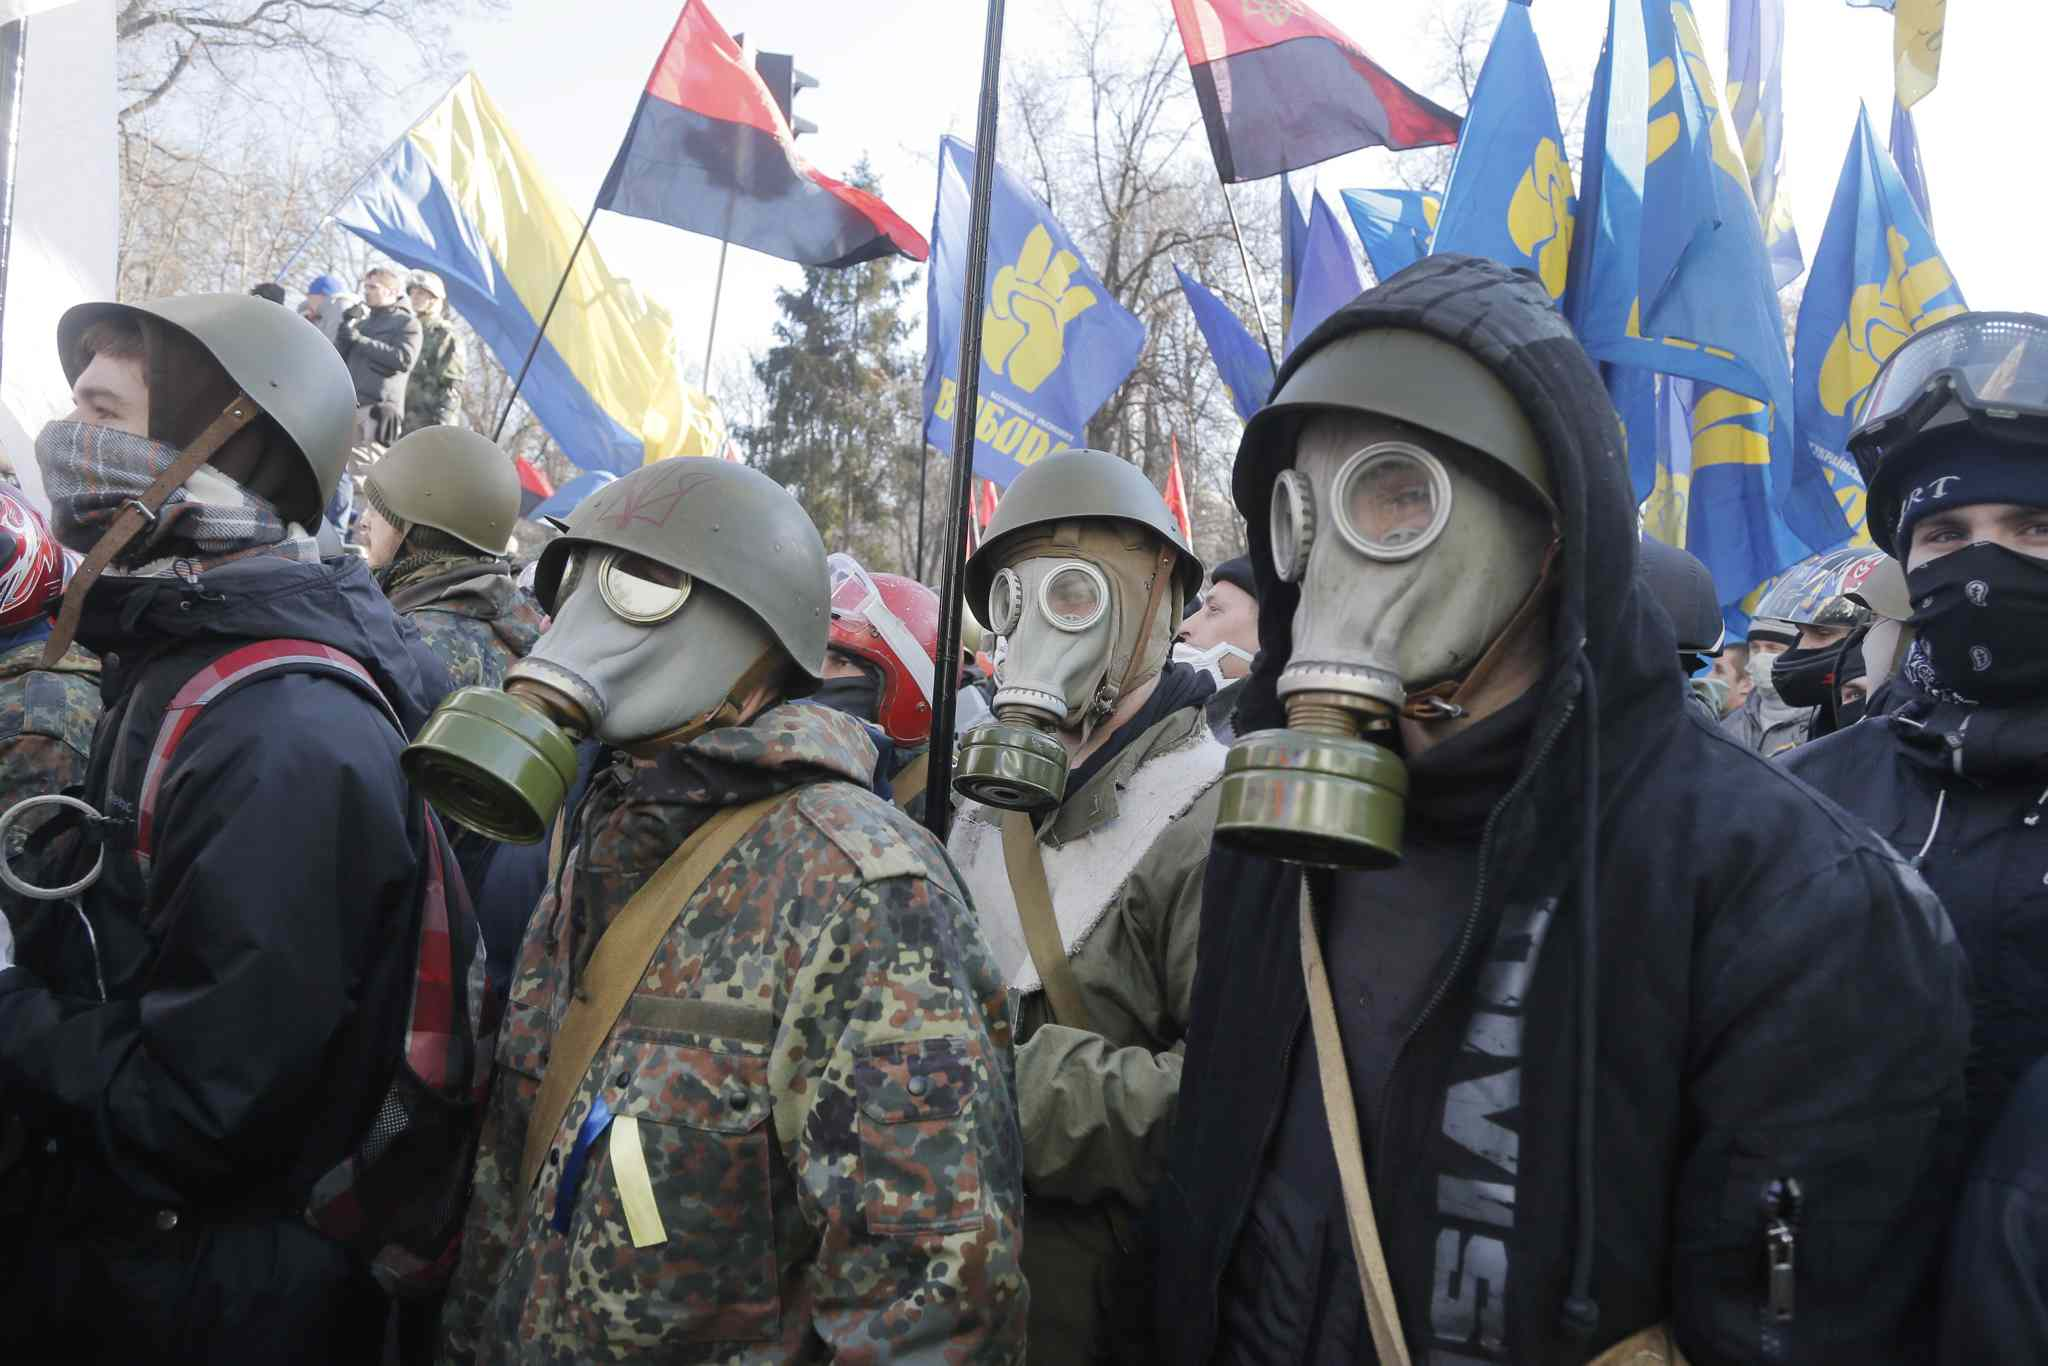 Anti-government protesters look on during clashes with riot police outside Ukraine's parliament in Kyiv on Tuesday.